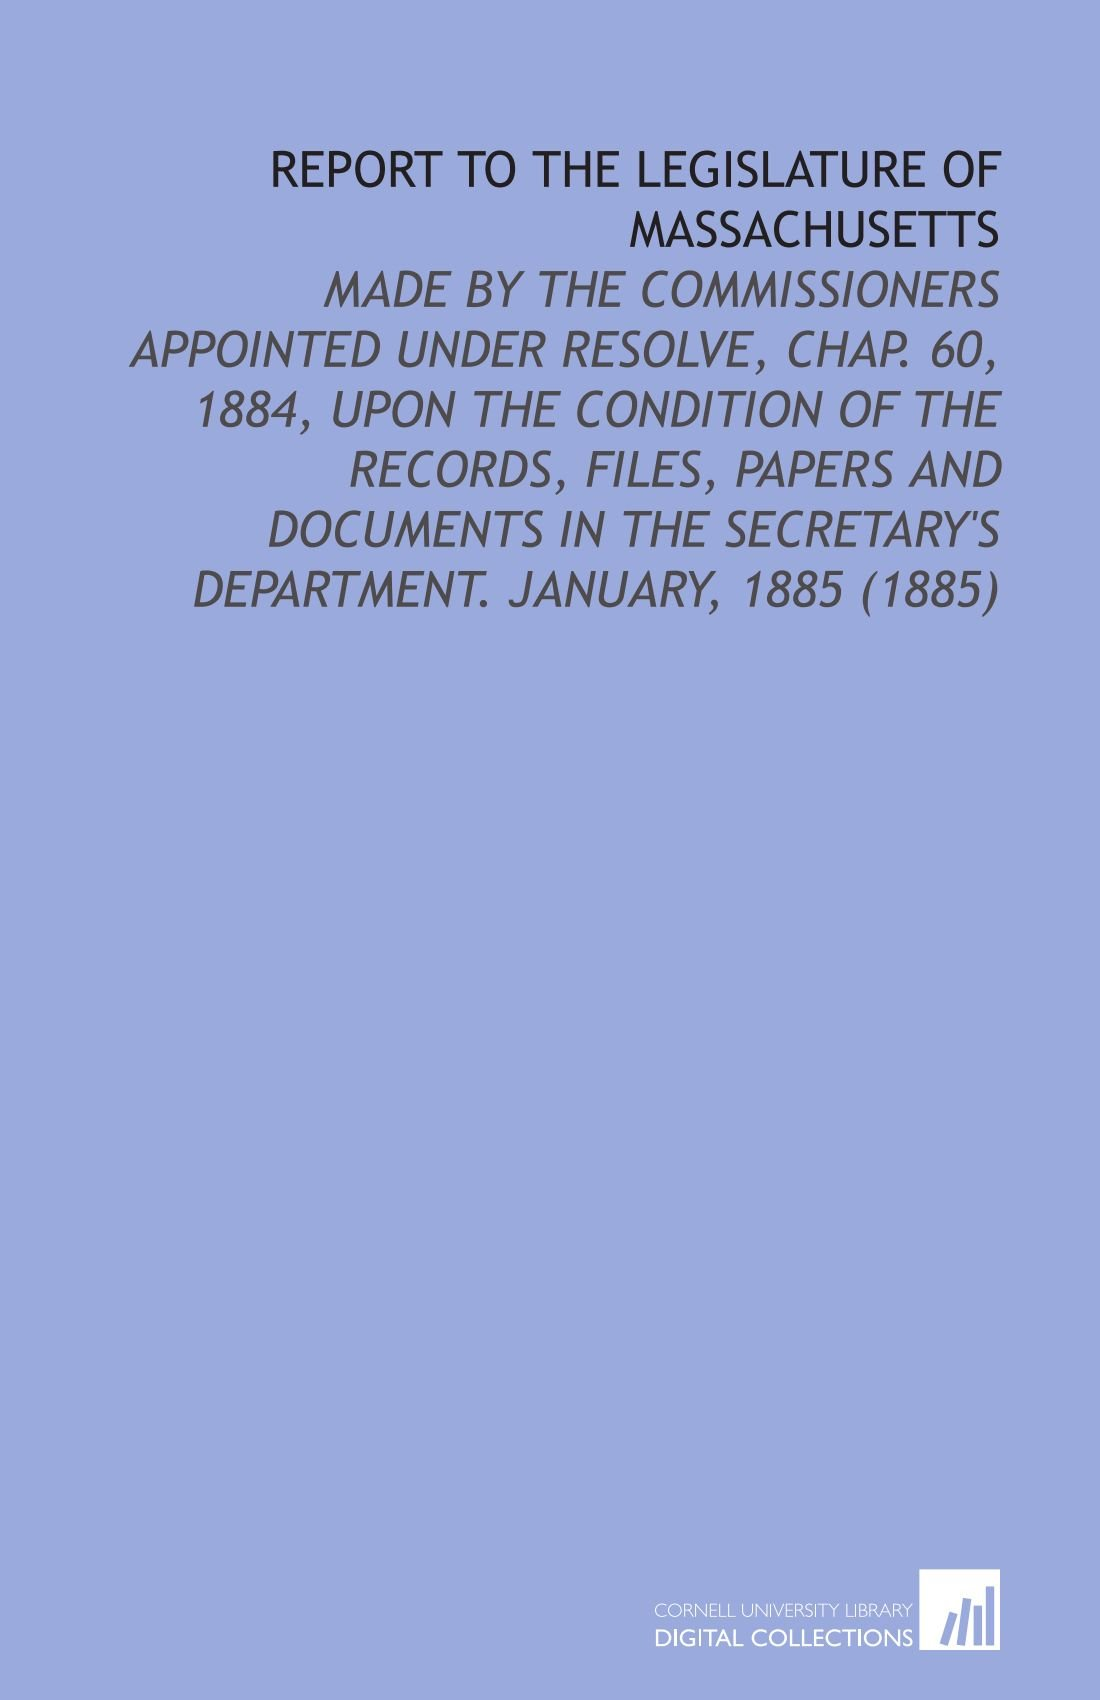 Download Report to the Legislature of Massachusetts: Made by the Commissioners Appointed Under Resolve, Chap. 60, 1884, Upon the Condition of the Records, ... Secretary's Department. January, 1885 (1885) pdf epub